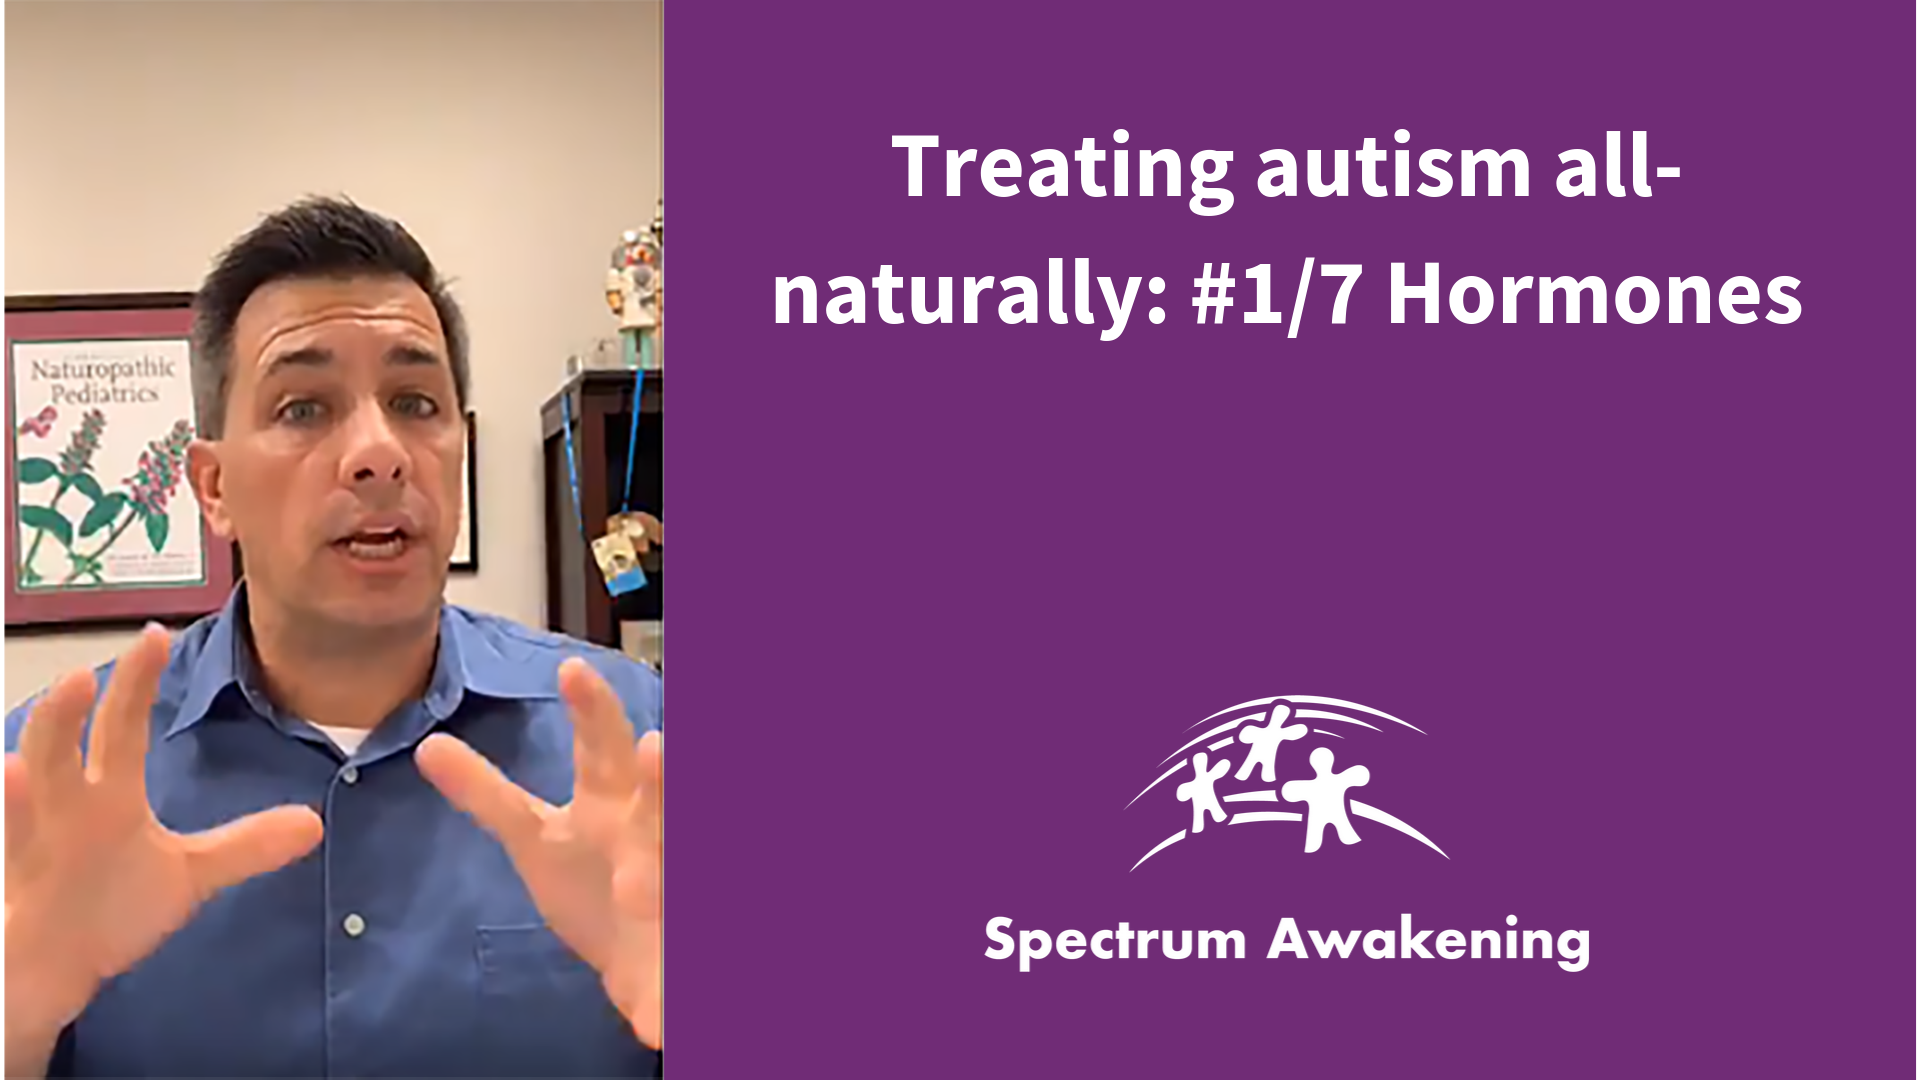 Treating autism all-naturally, #1/7 Hormones